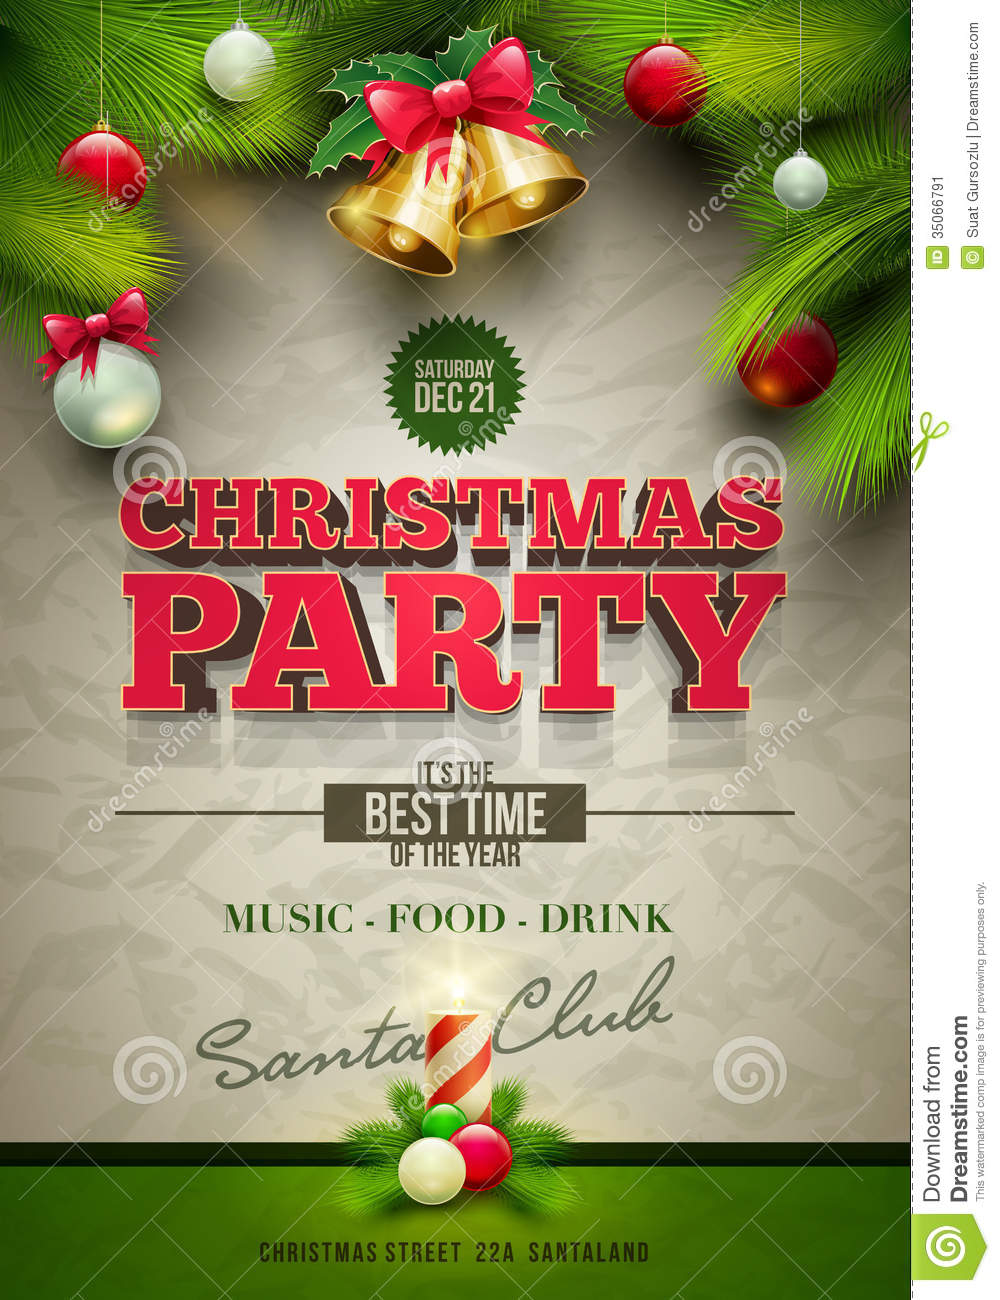 Christmas Party Poster stock vector. Illustration of greeting - 35066791